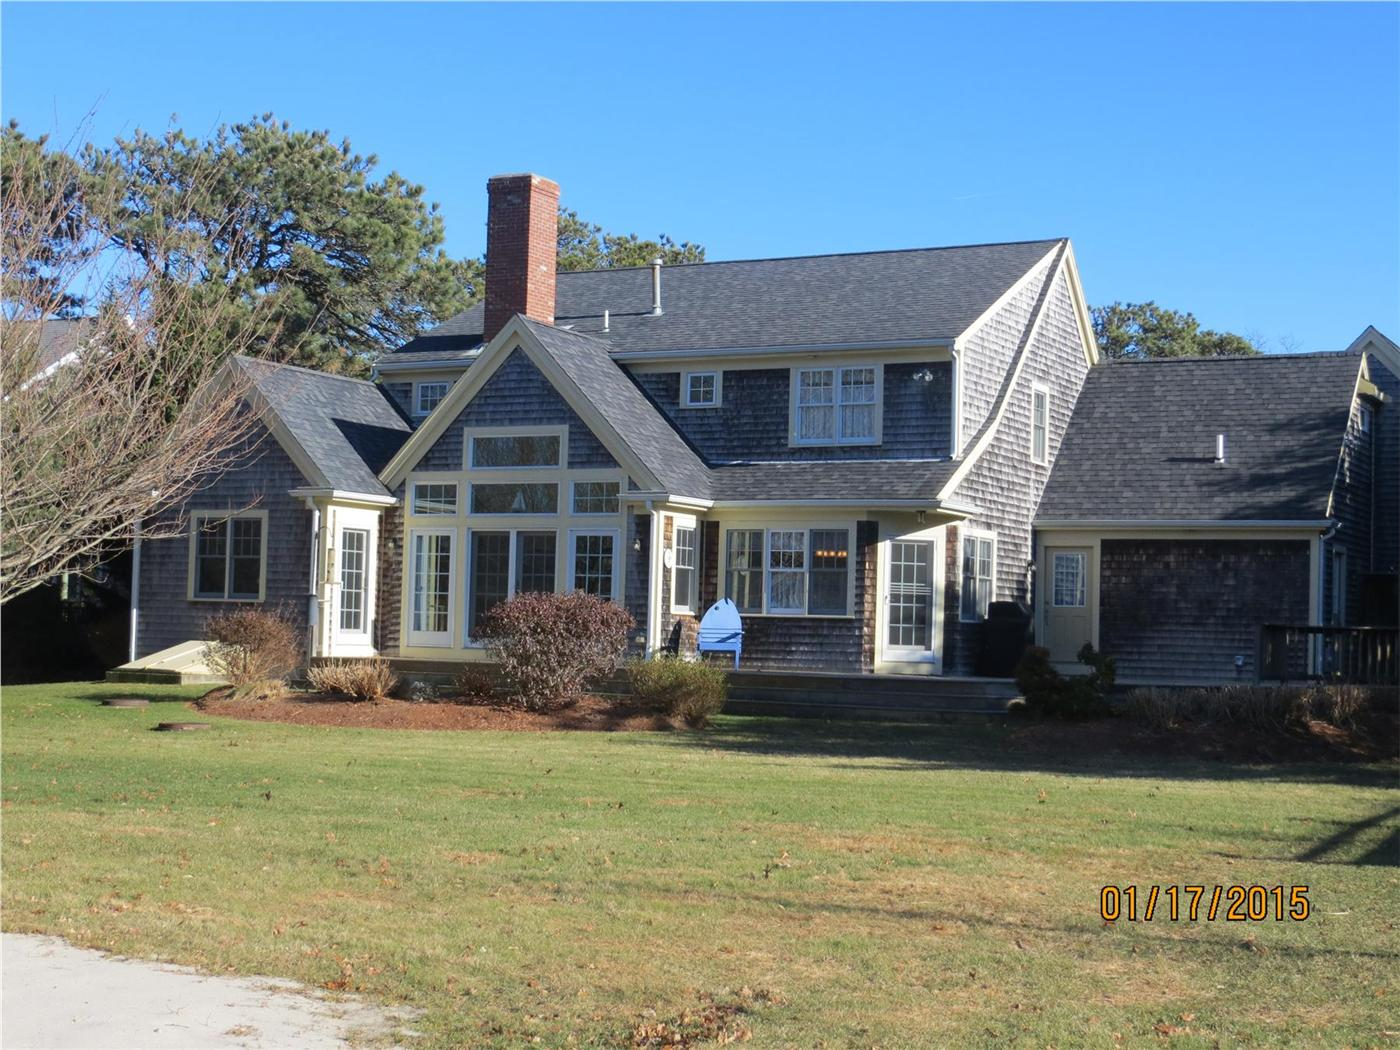 Dennis Vacation Rental Home In Cape Cod Ma 02638 3 10th